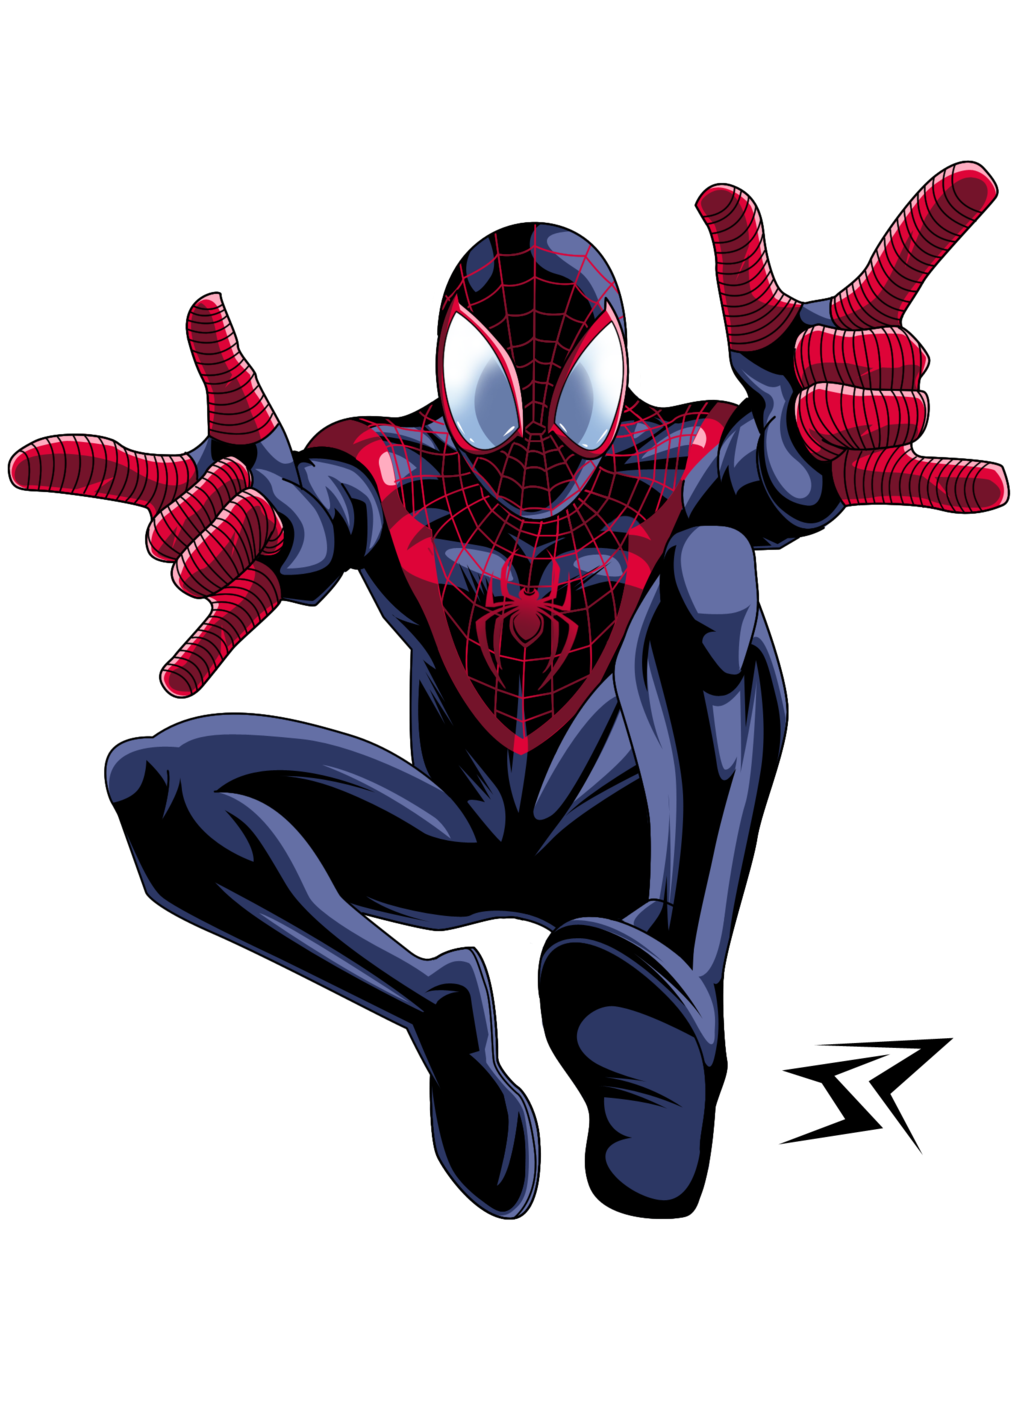 Ultimate Spiderman Miles Morales By Jonathan Piccini Ultimate Spiderman Spiderman Spiderman Art